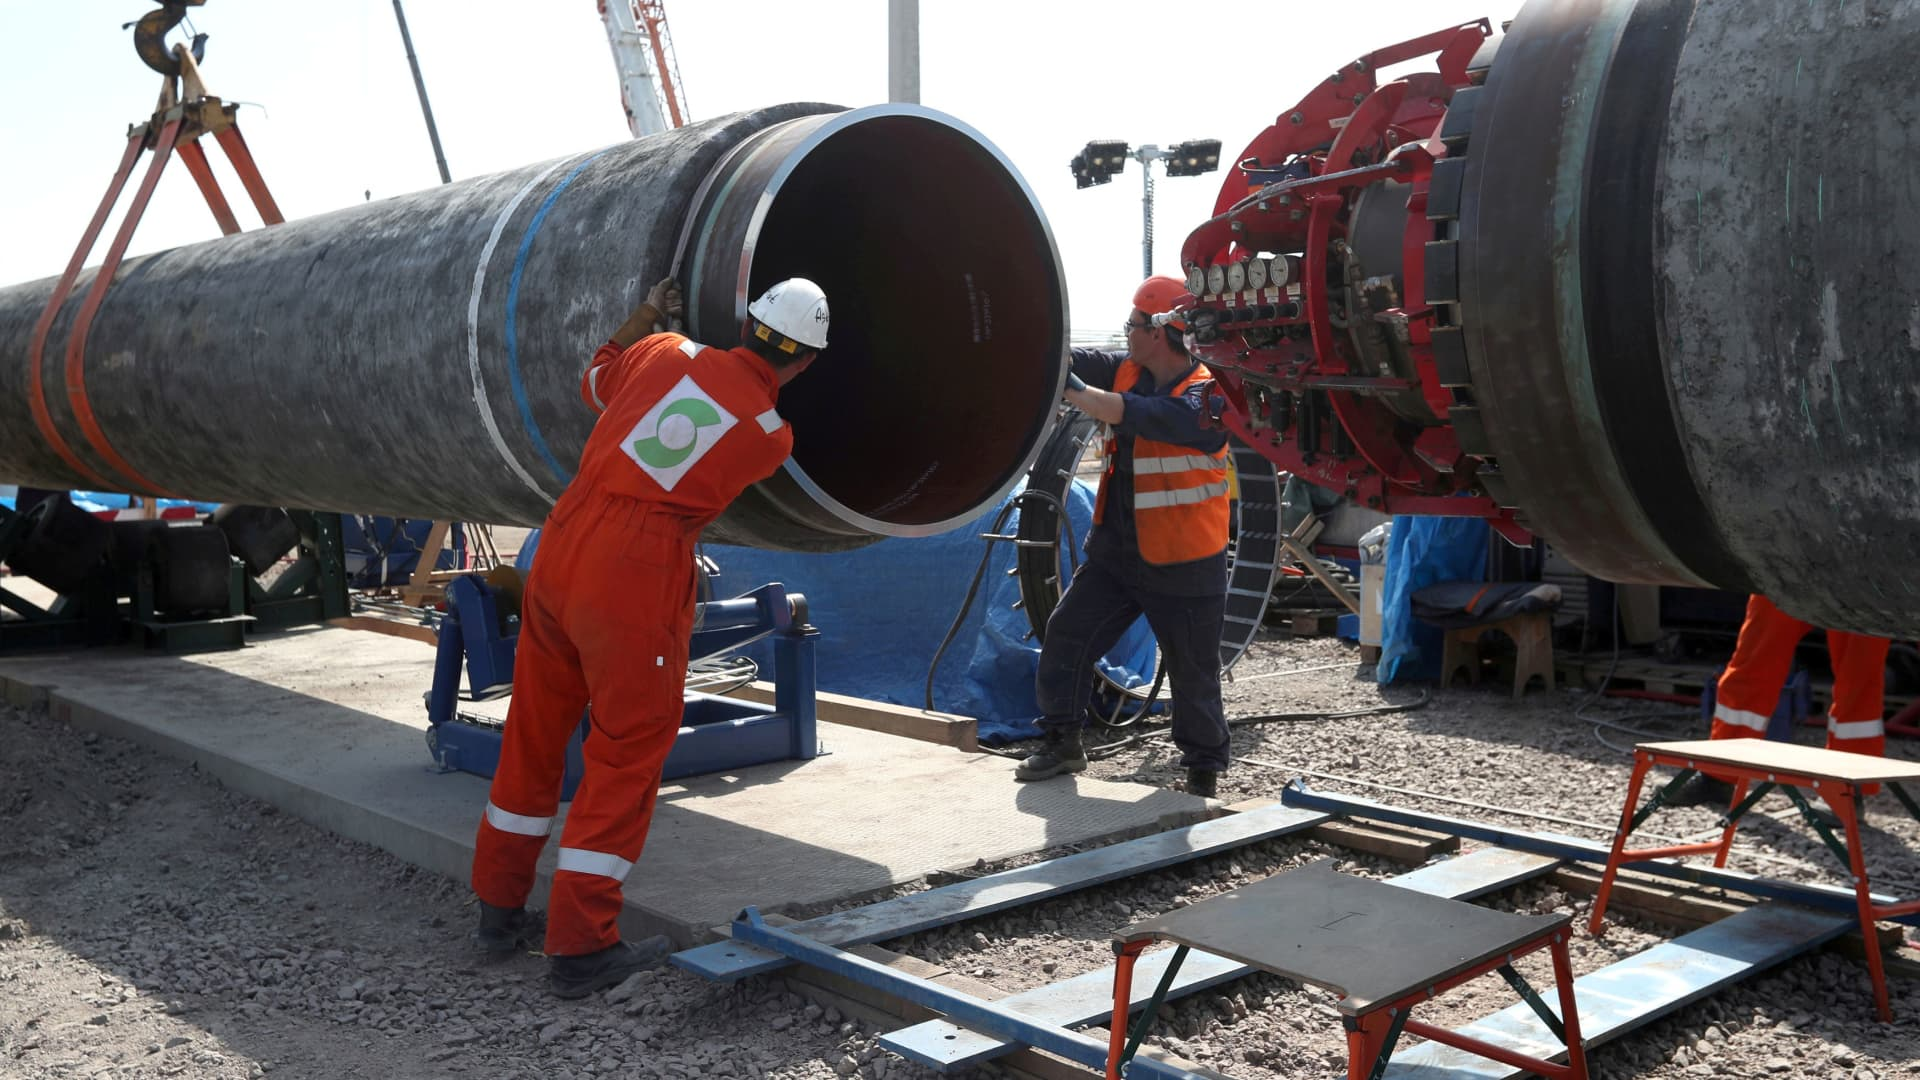 Workers are seen at the construction site of the Nord Stream 2 gas pipeline, near the town of Kingisepp, Leningrad region, Russia, June 5, 2019.